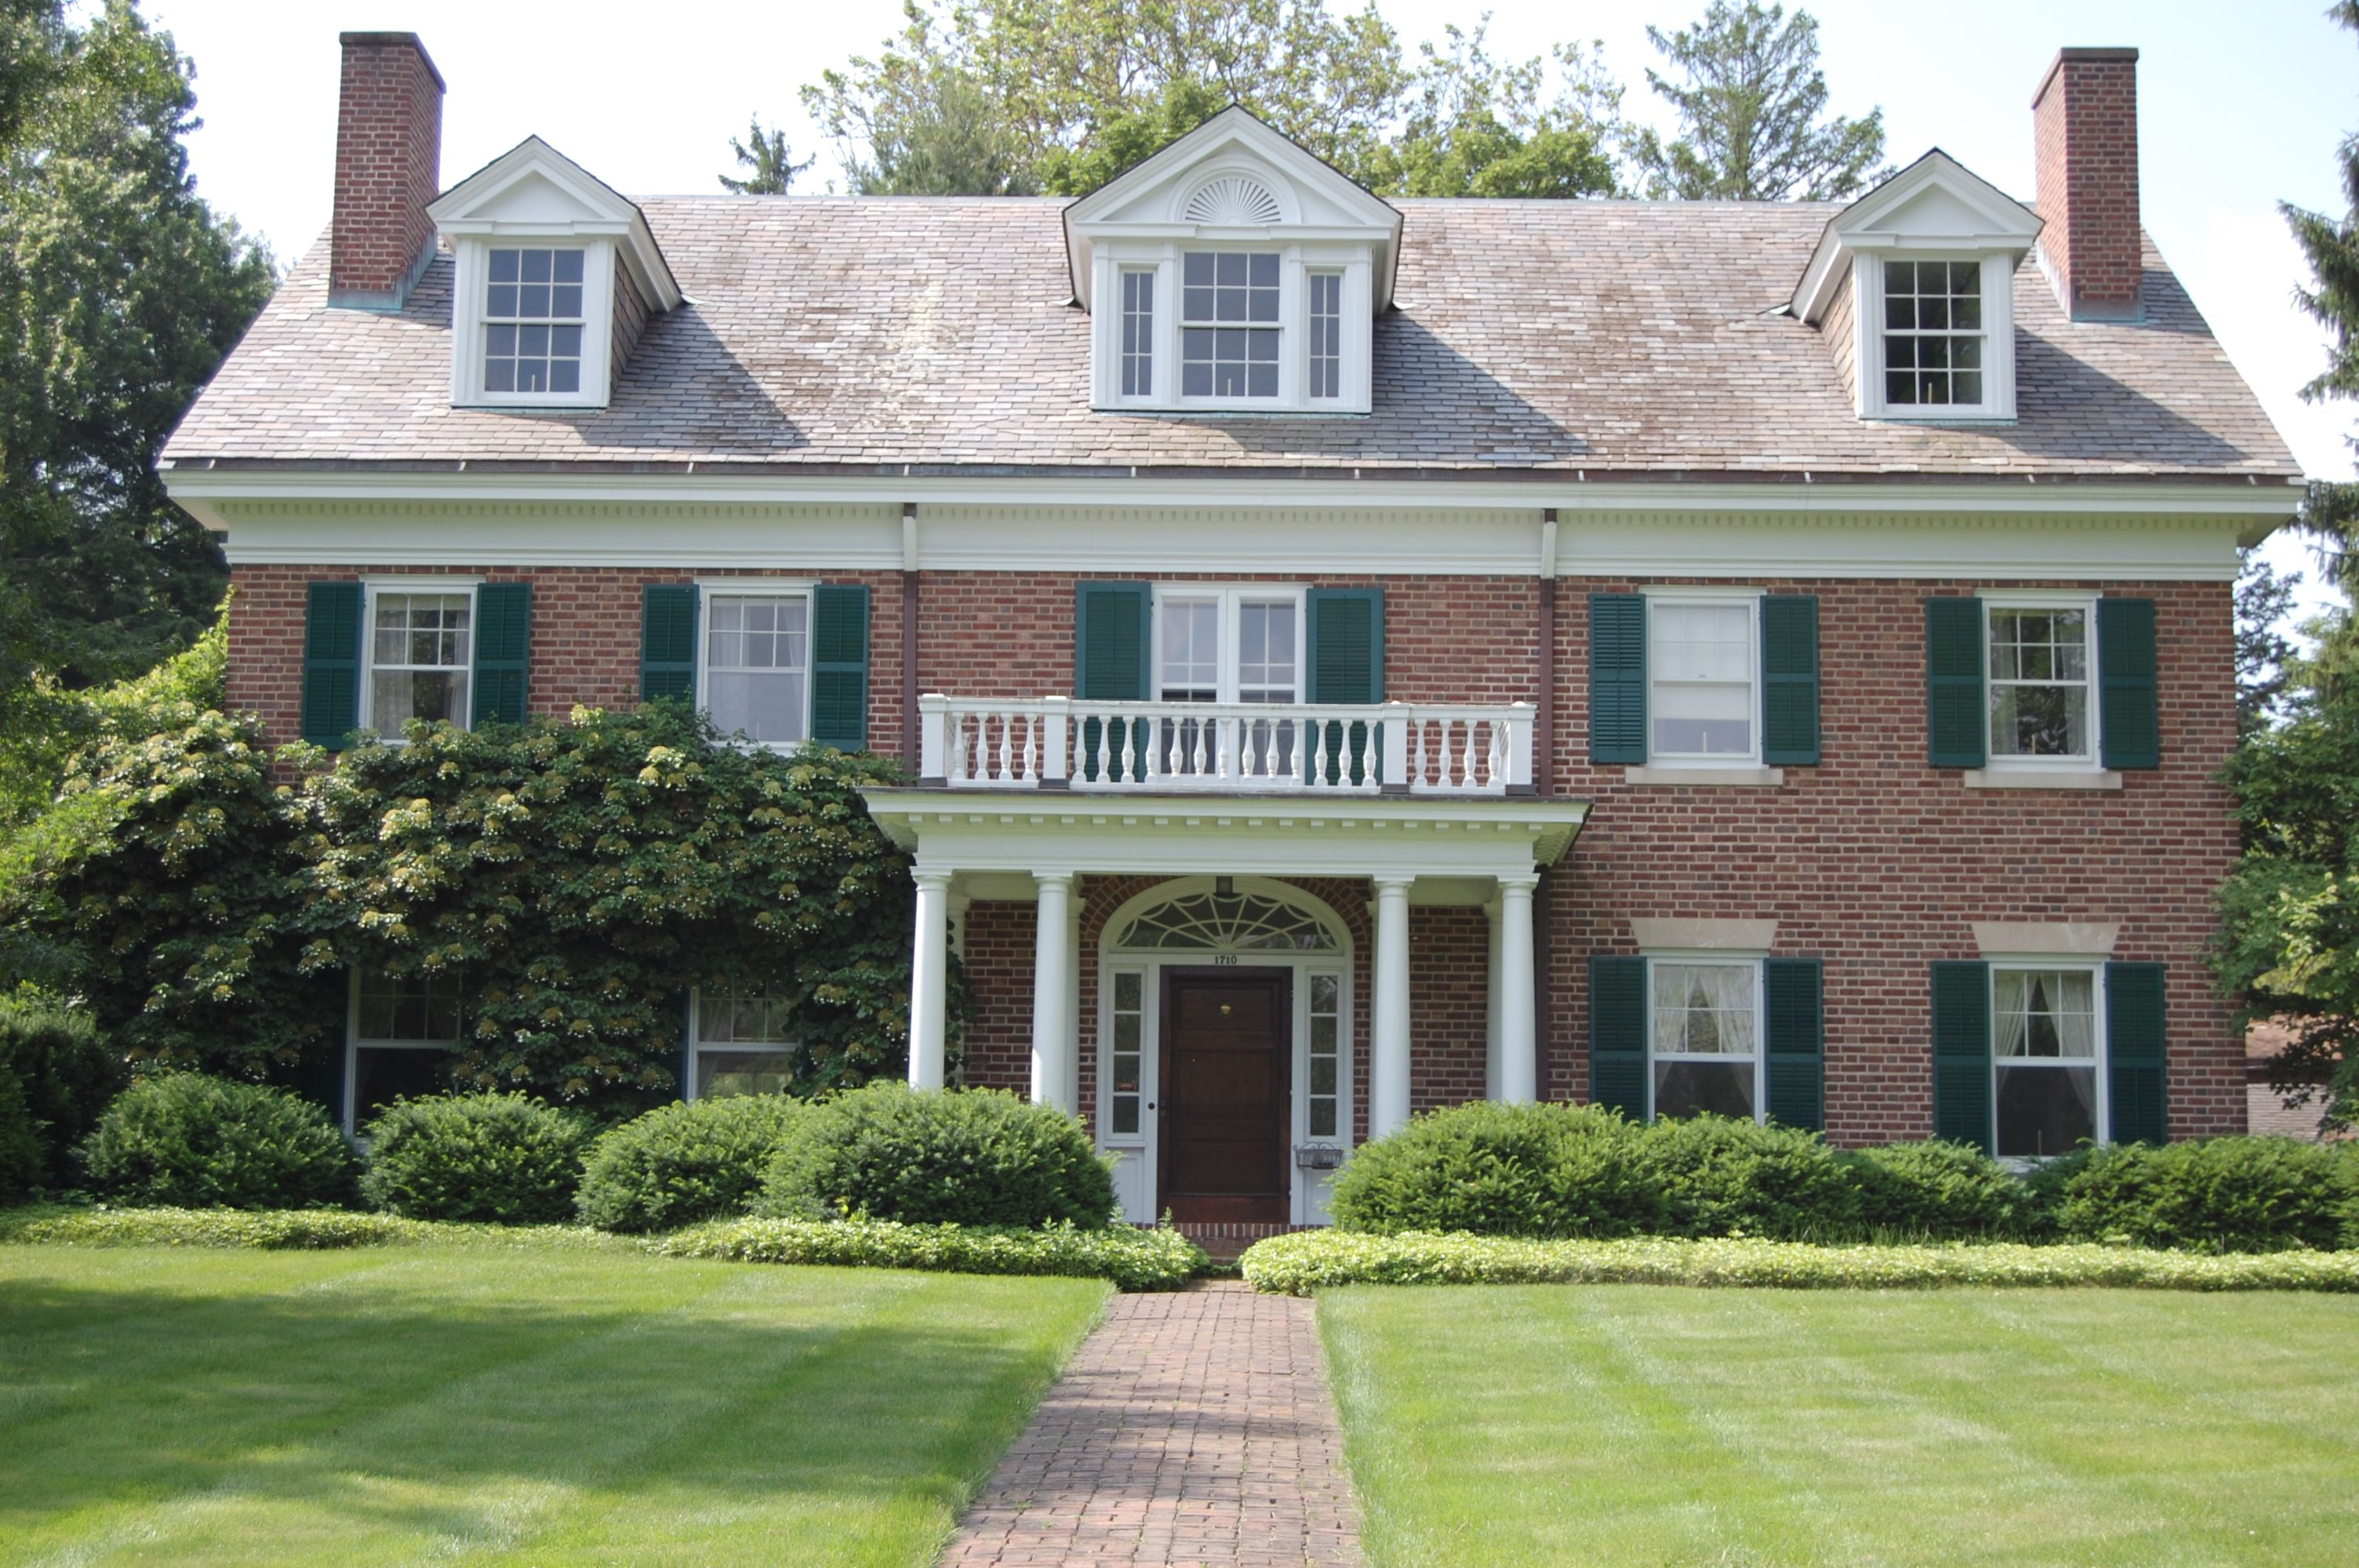 georgian colonial revival houses are a symmetrical beauty